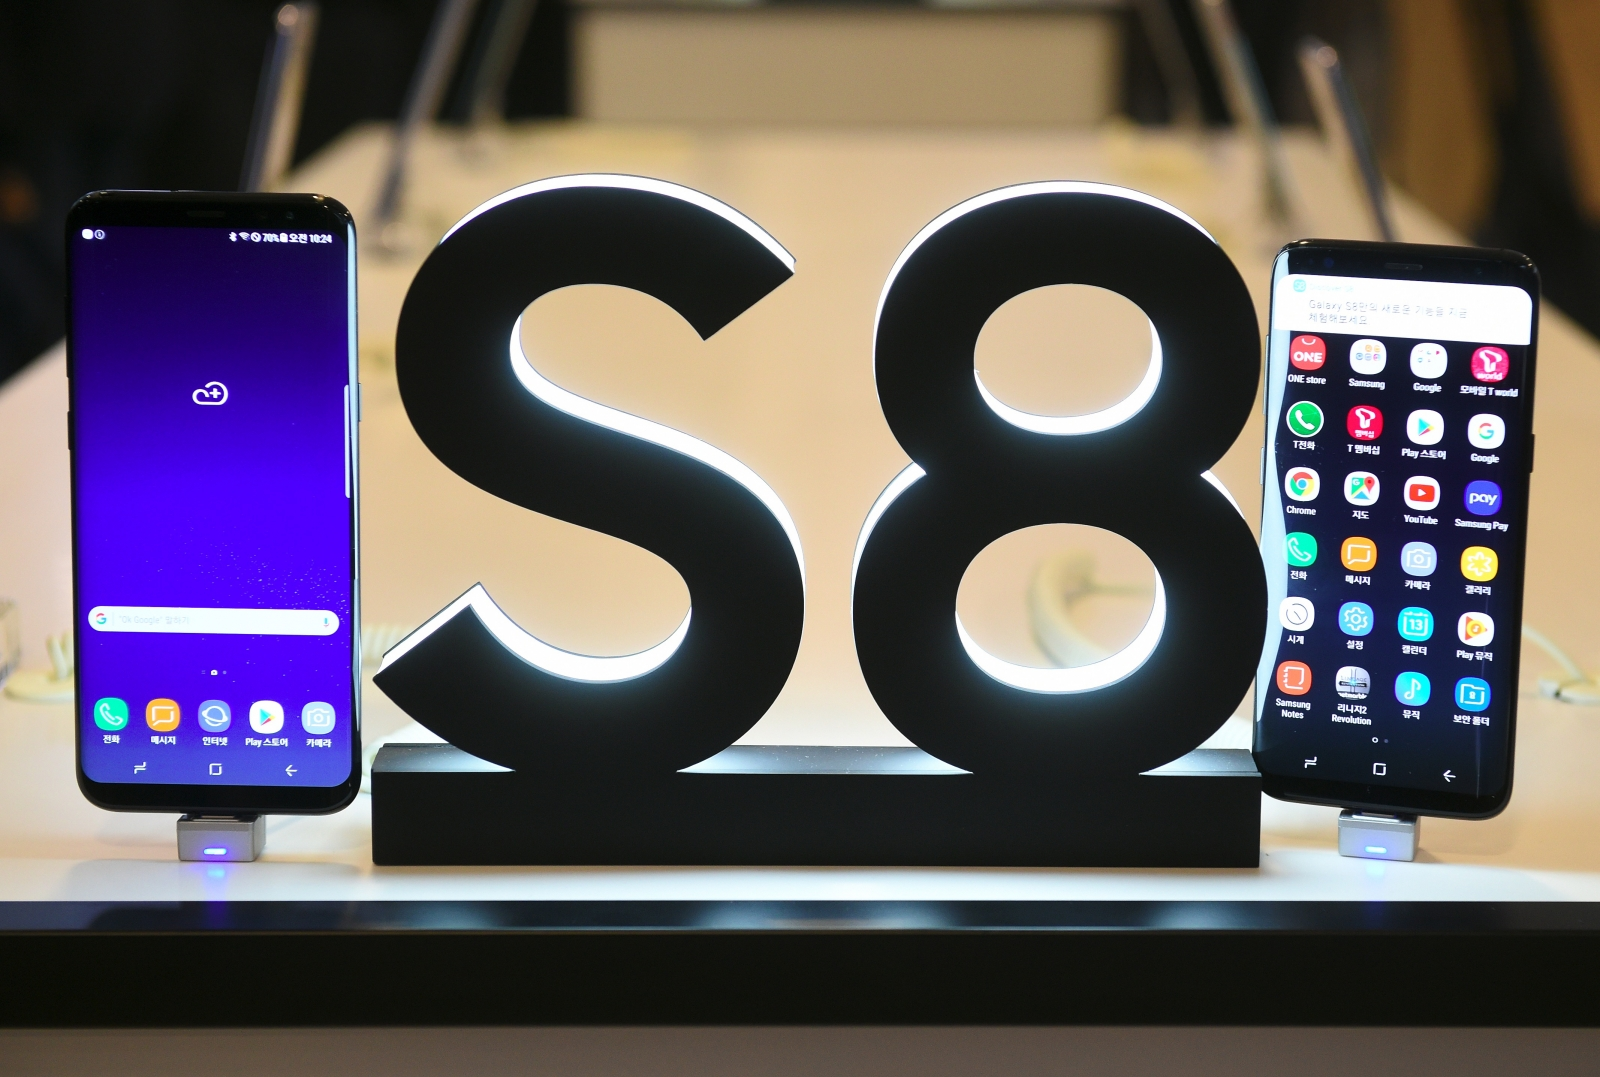 Galaxy S8 and S8+ teardown